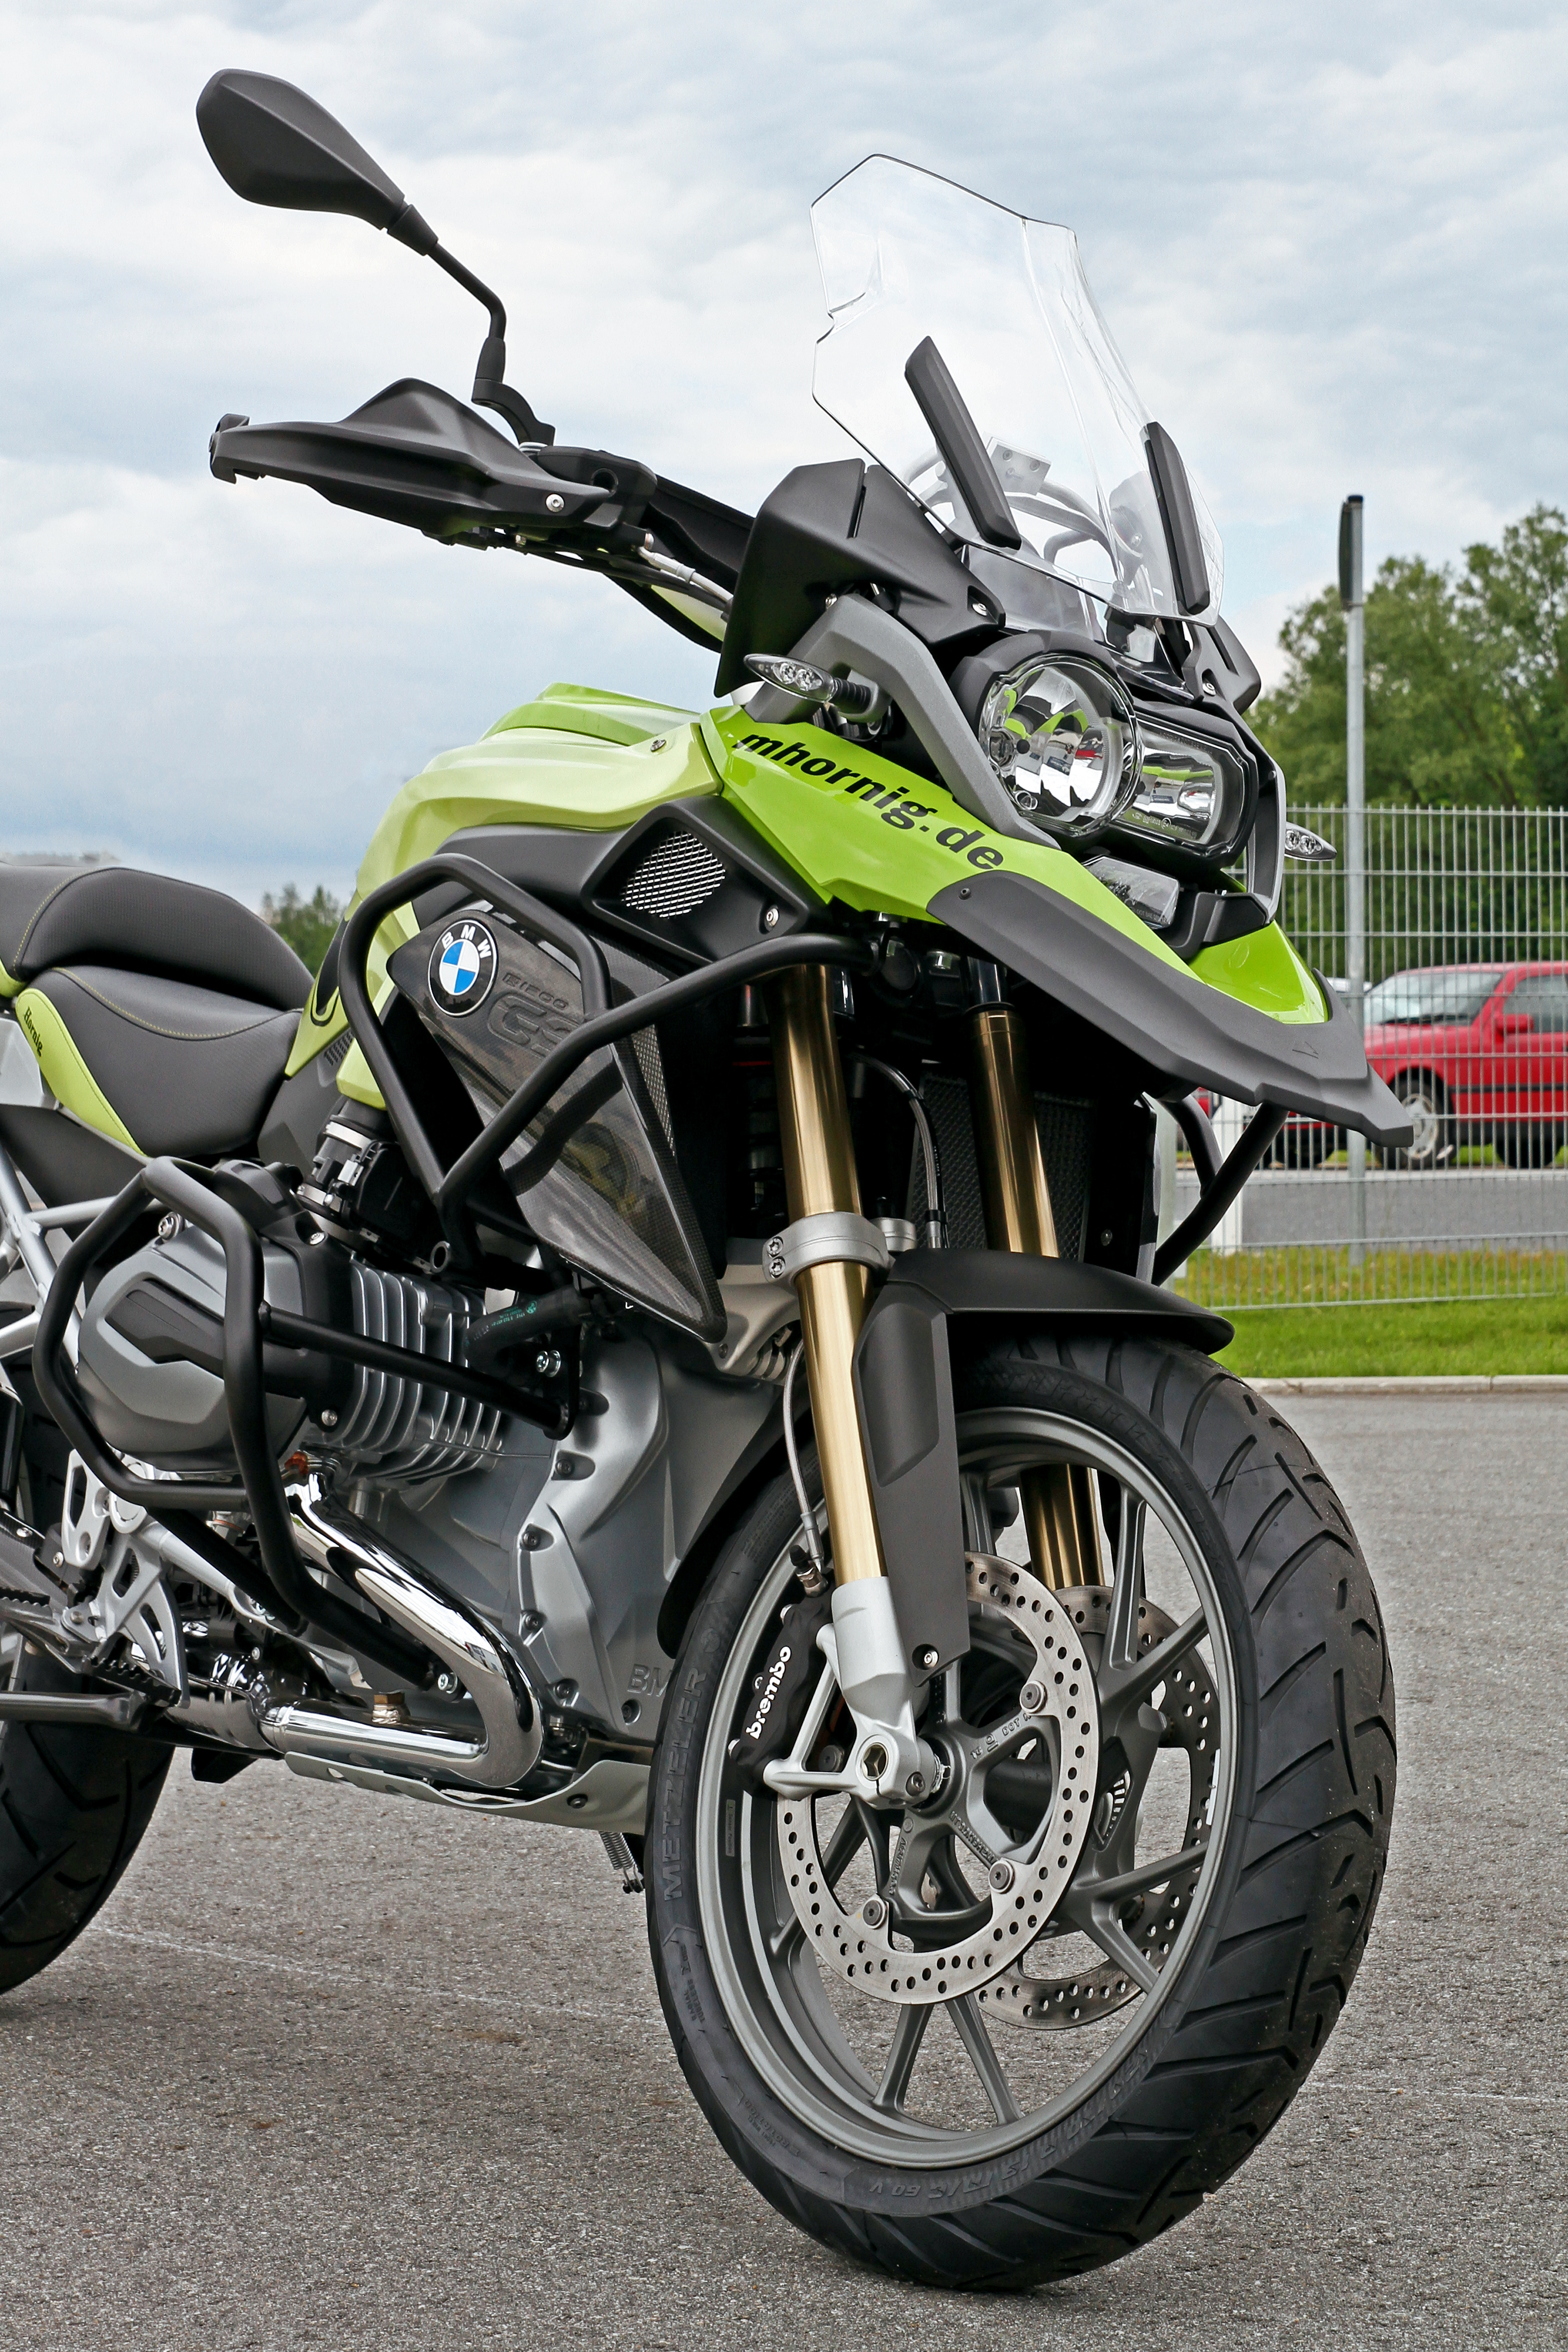 Bmw R1200gs Lc Conversion By Hornig More Protection And More Custom